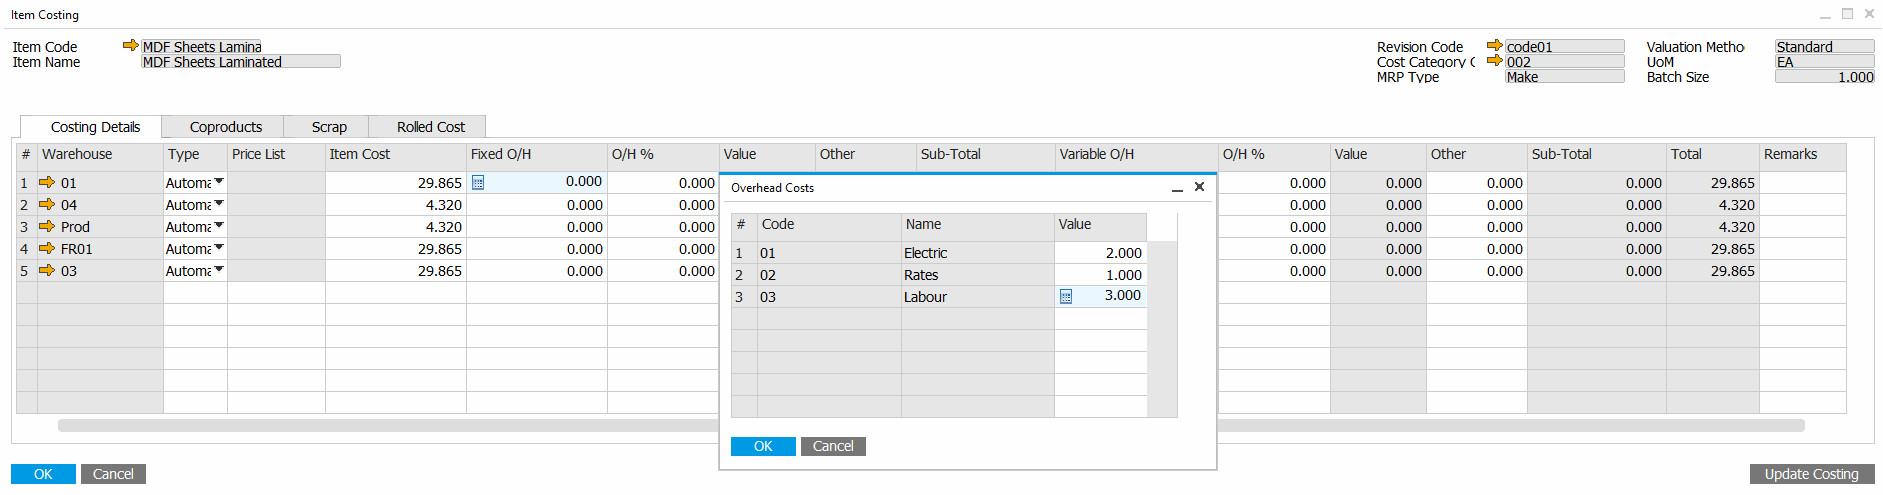 SAP Business One and ProcessForce cost calculation